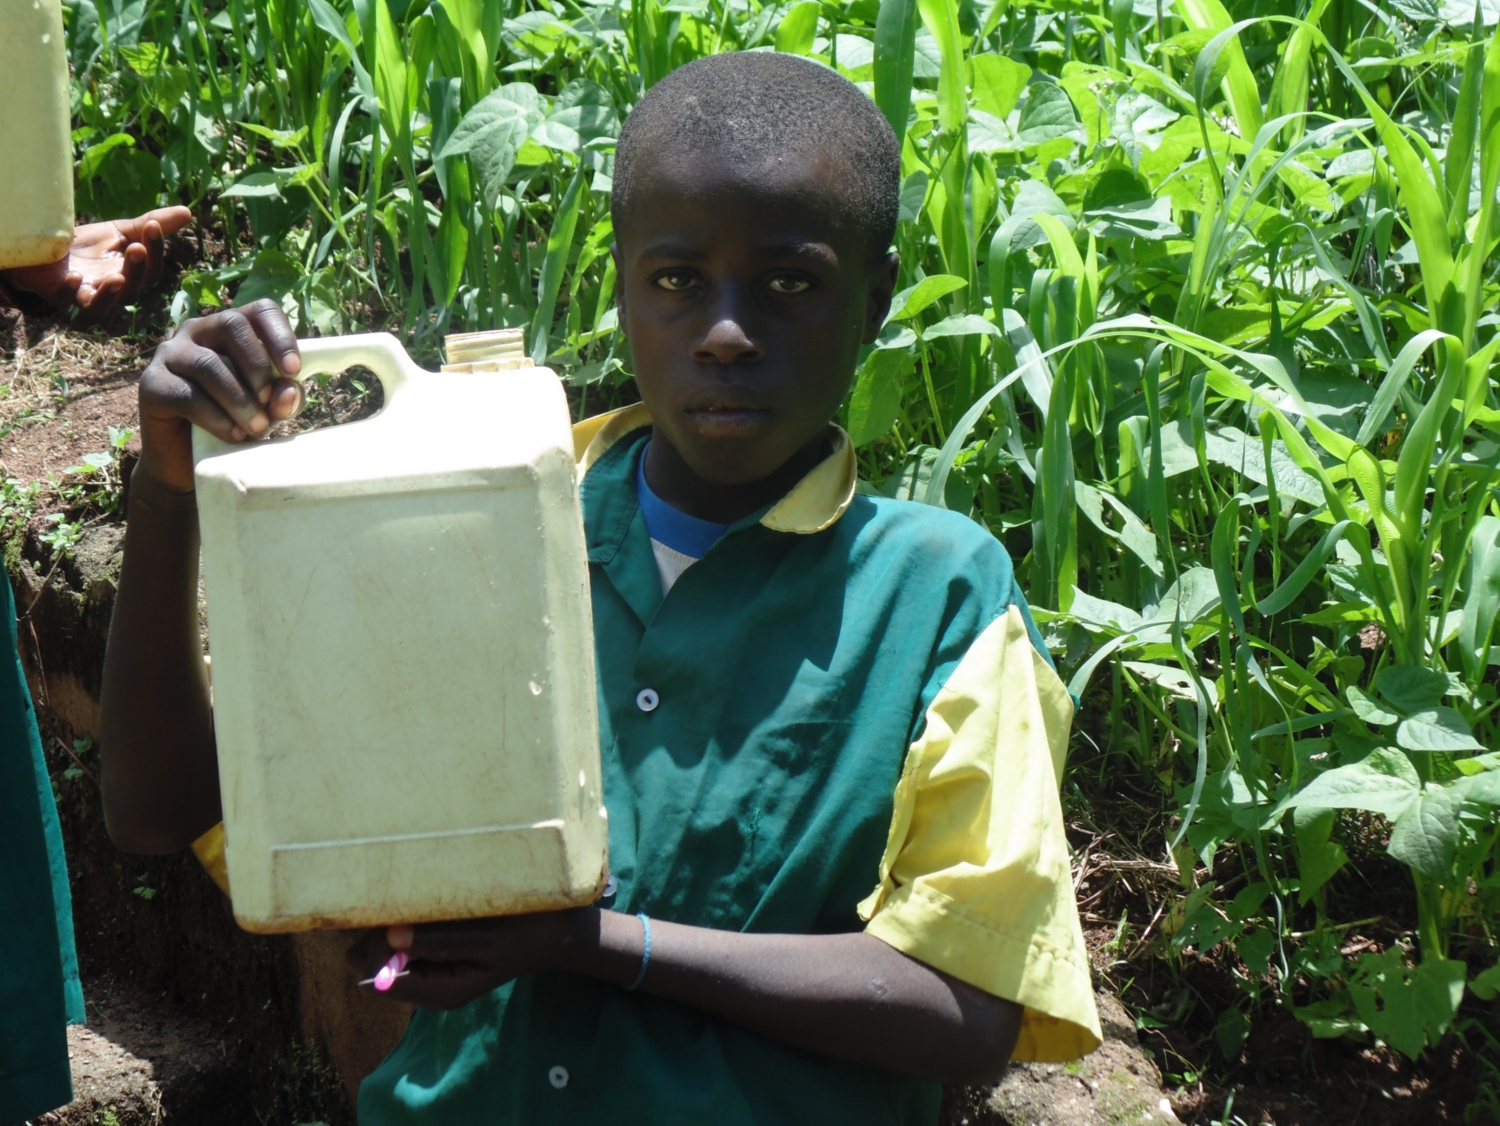 The Water Project : kenya18065-boy-holds-up-container-filled-with-water